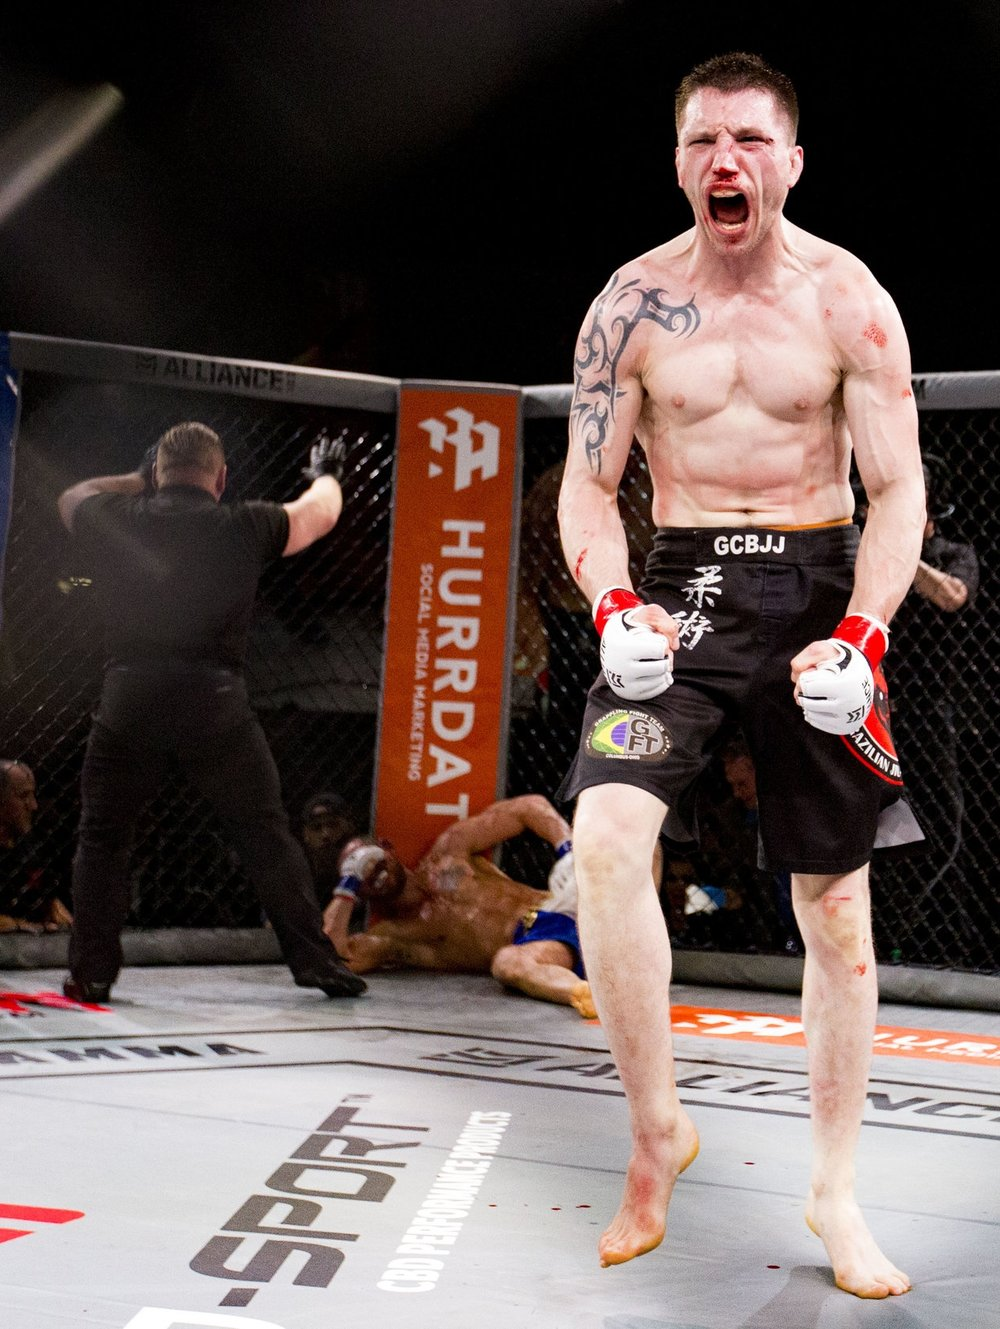 An MMA fighter celebrates after his knockout win during the Alliance MMA competition at the Arnold Sports Festival in Columbus, Ohio on March 3, 2018.